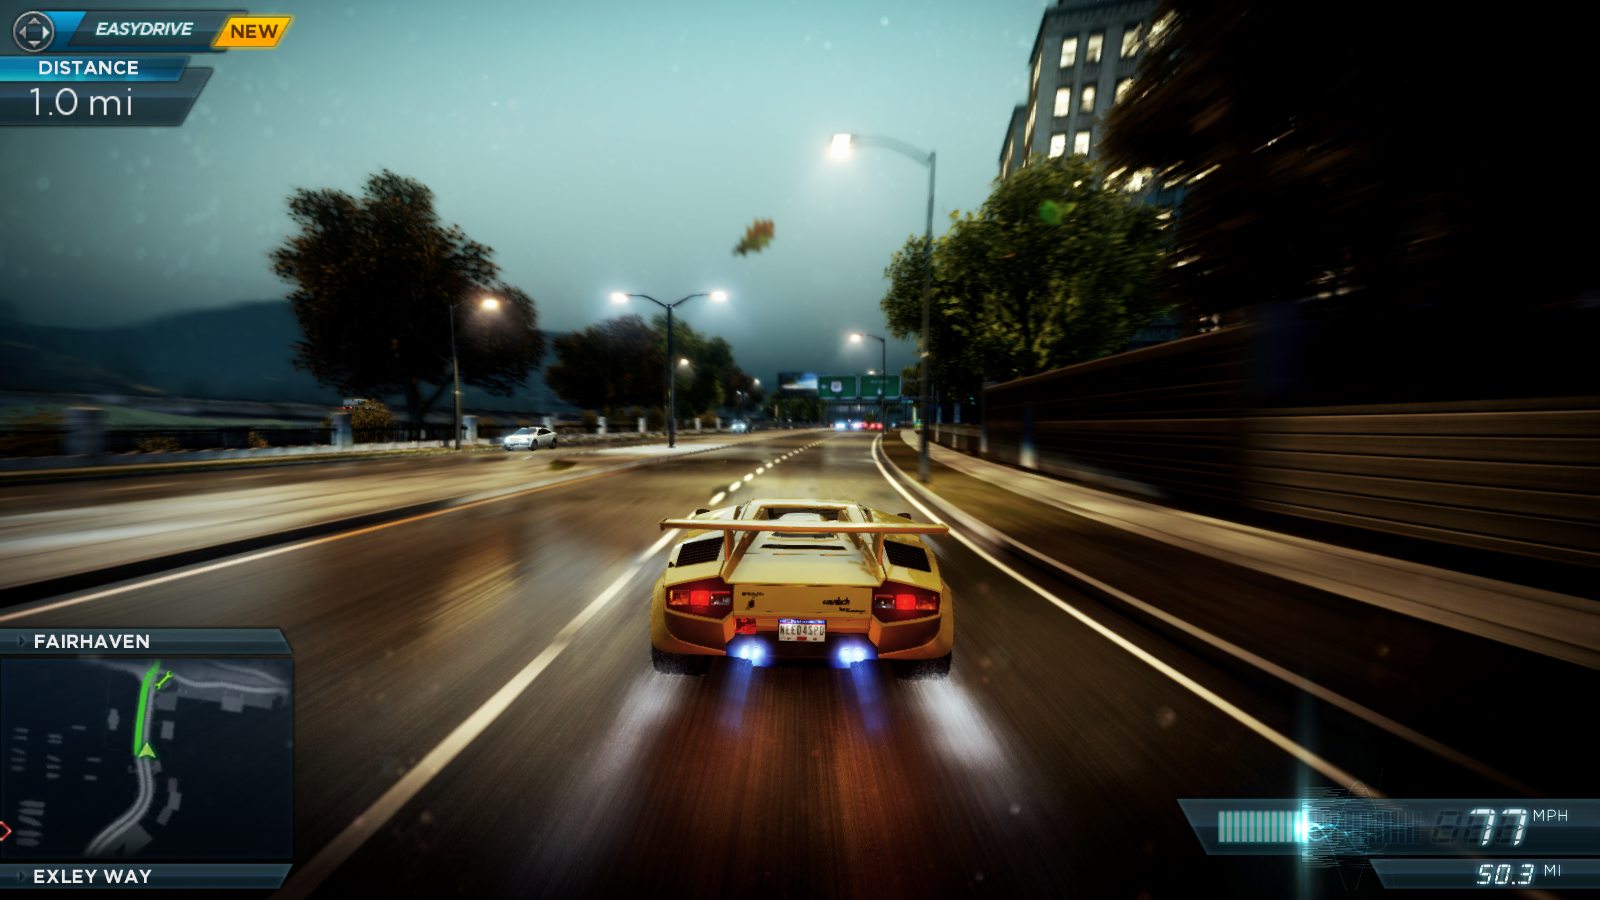 How to get cop cars in need for speed most wanted 2012: 13 steps.